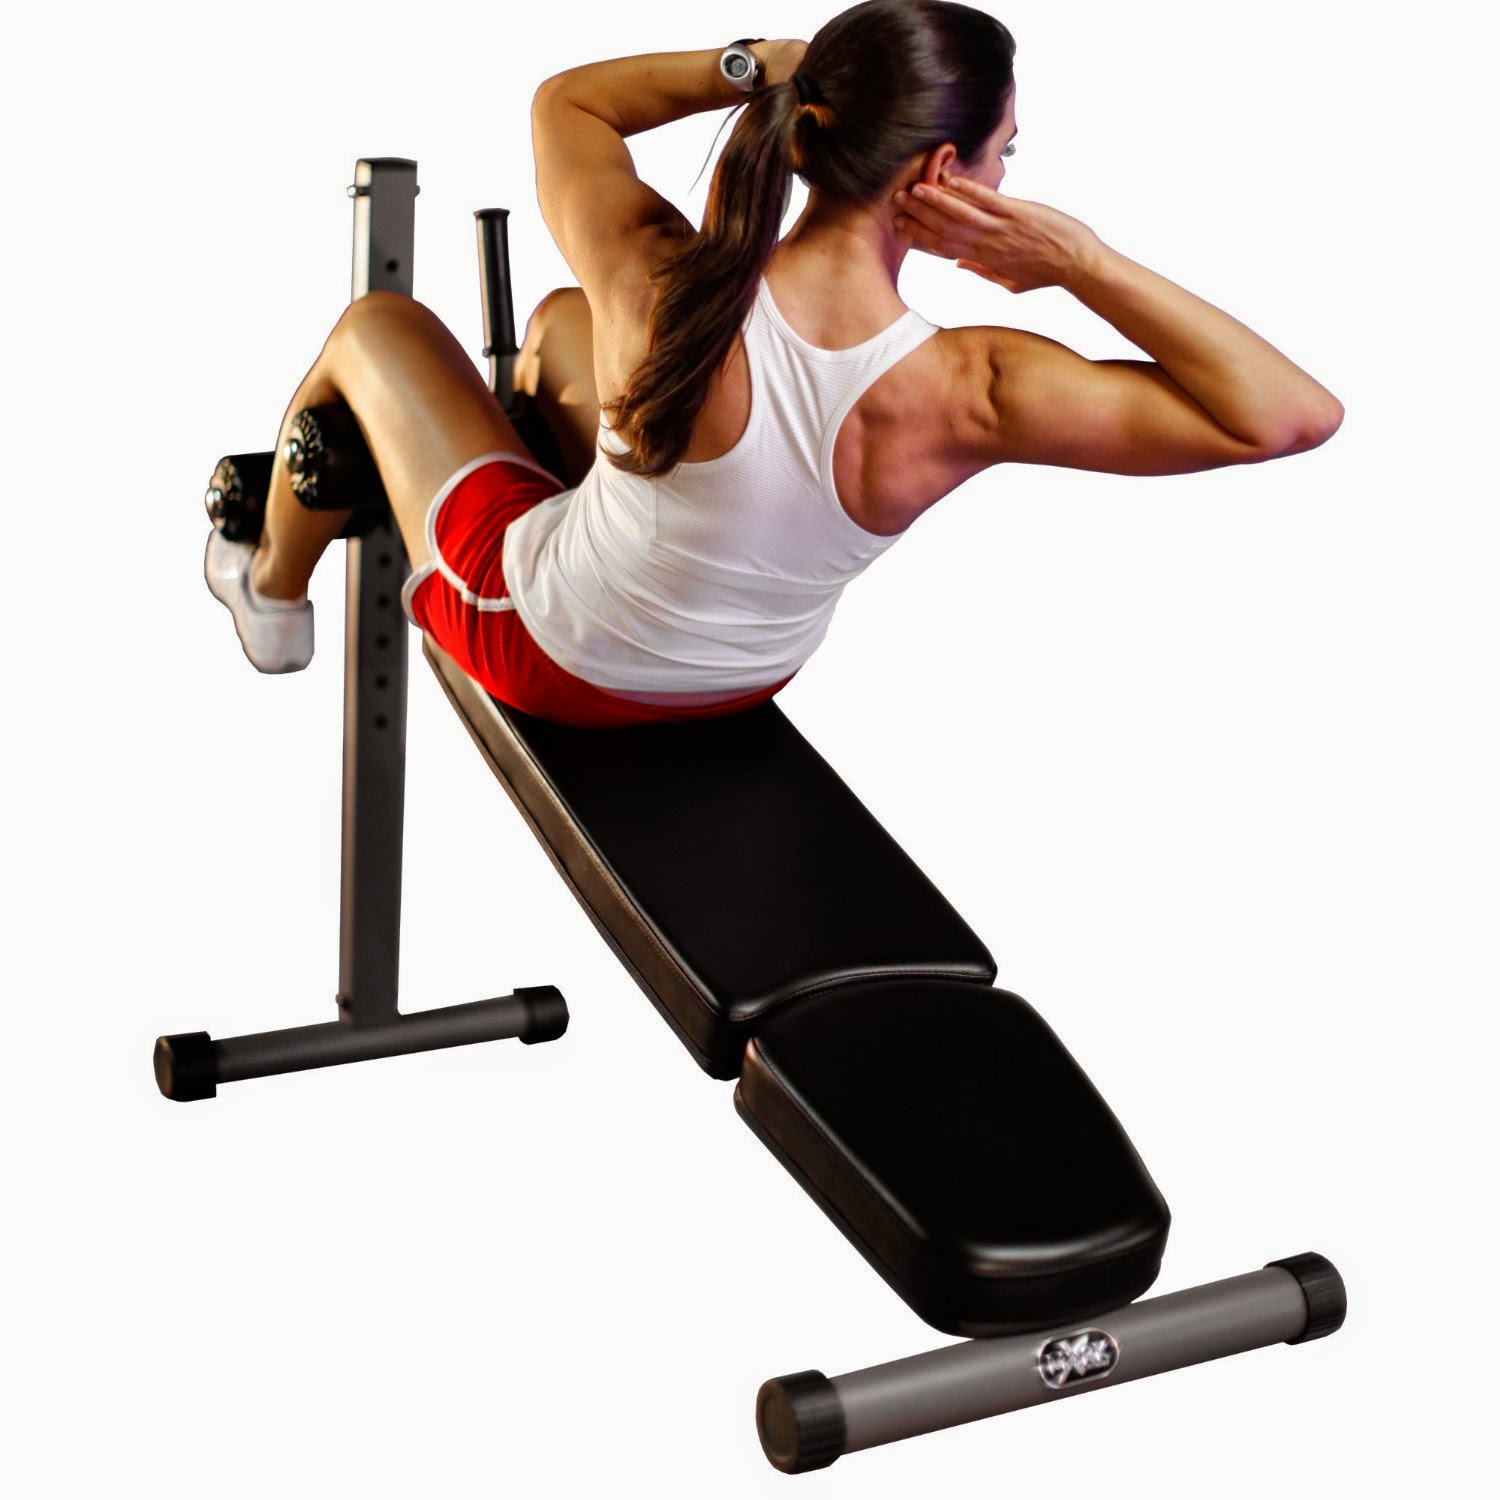 Sit Up Bench Price In Nigeria Sit Up Bench For Sale